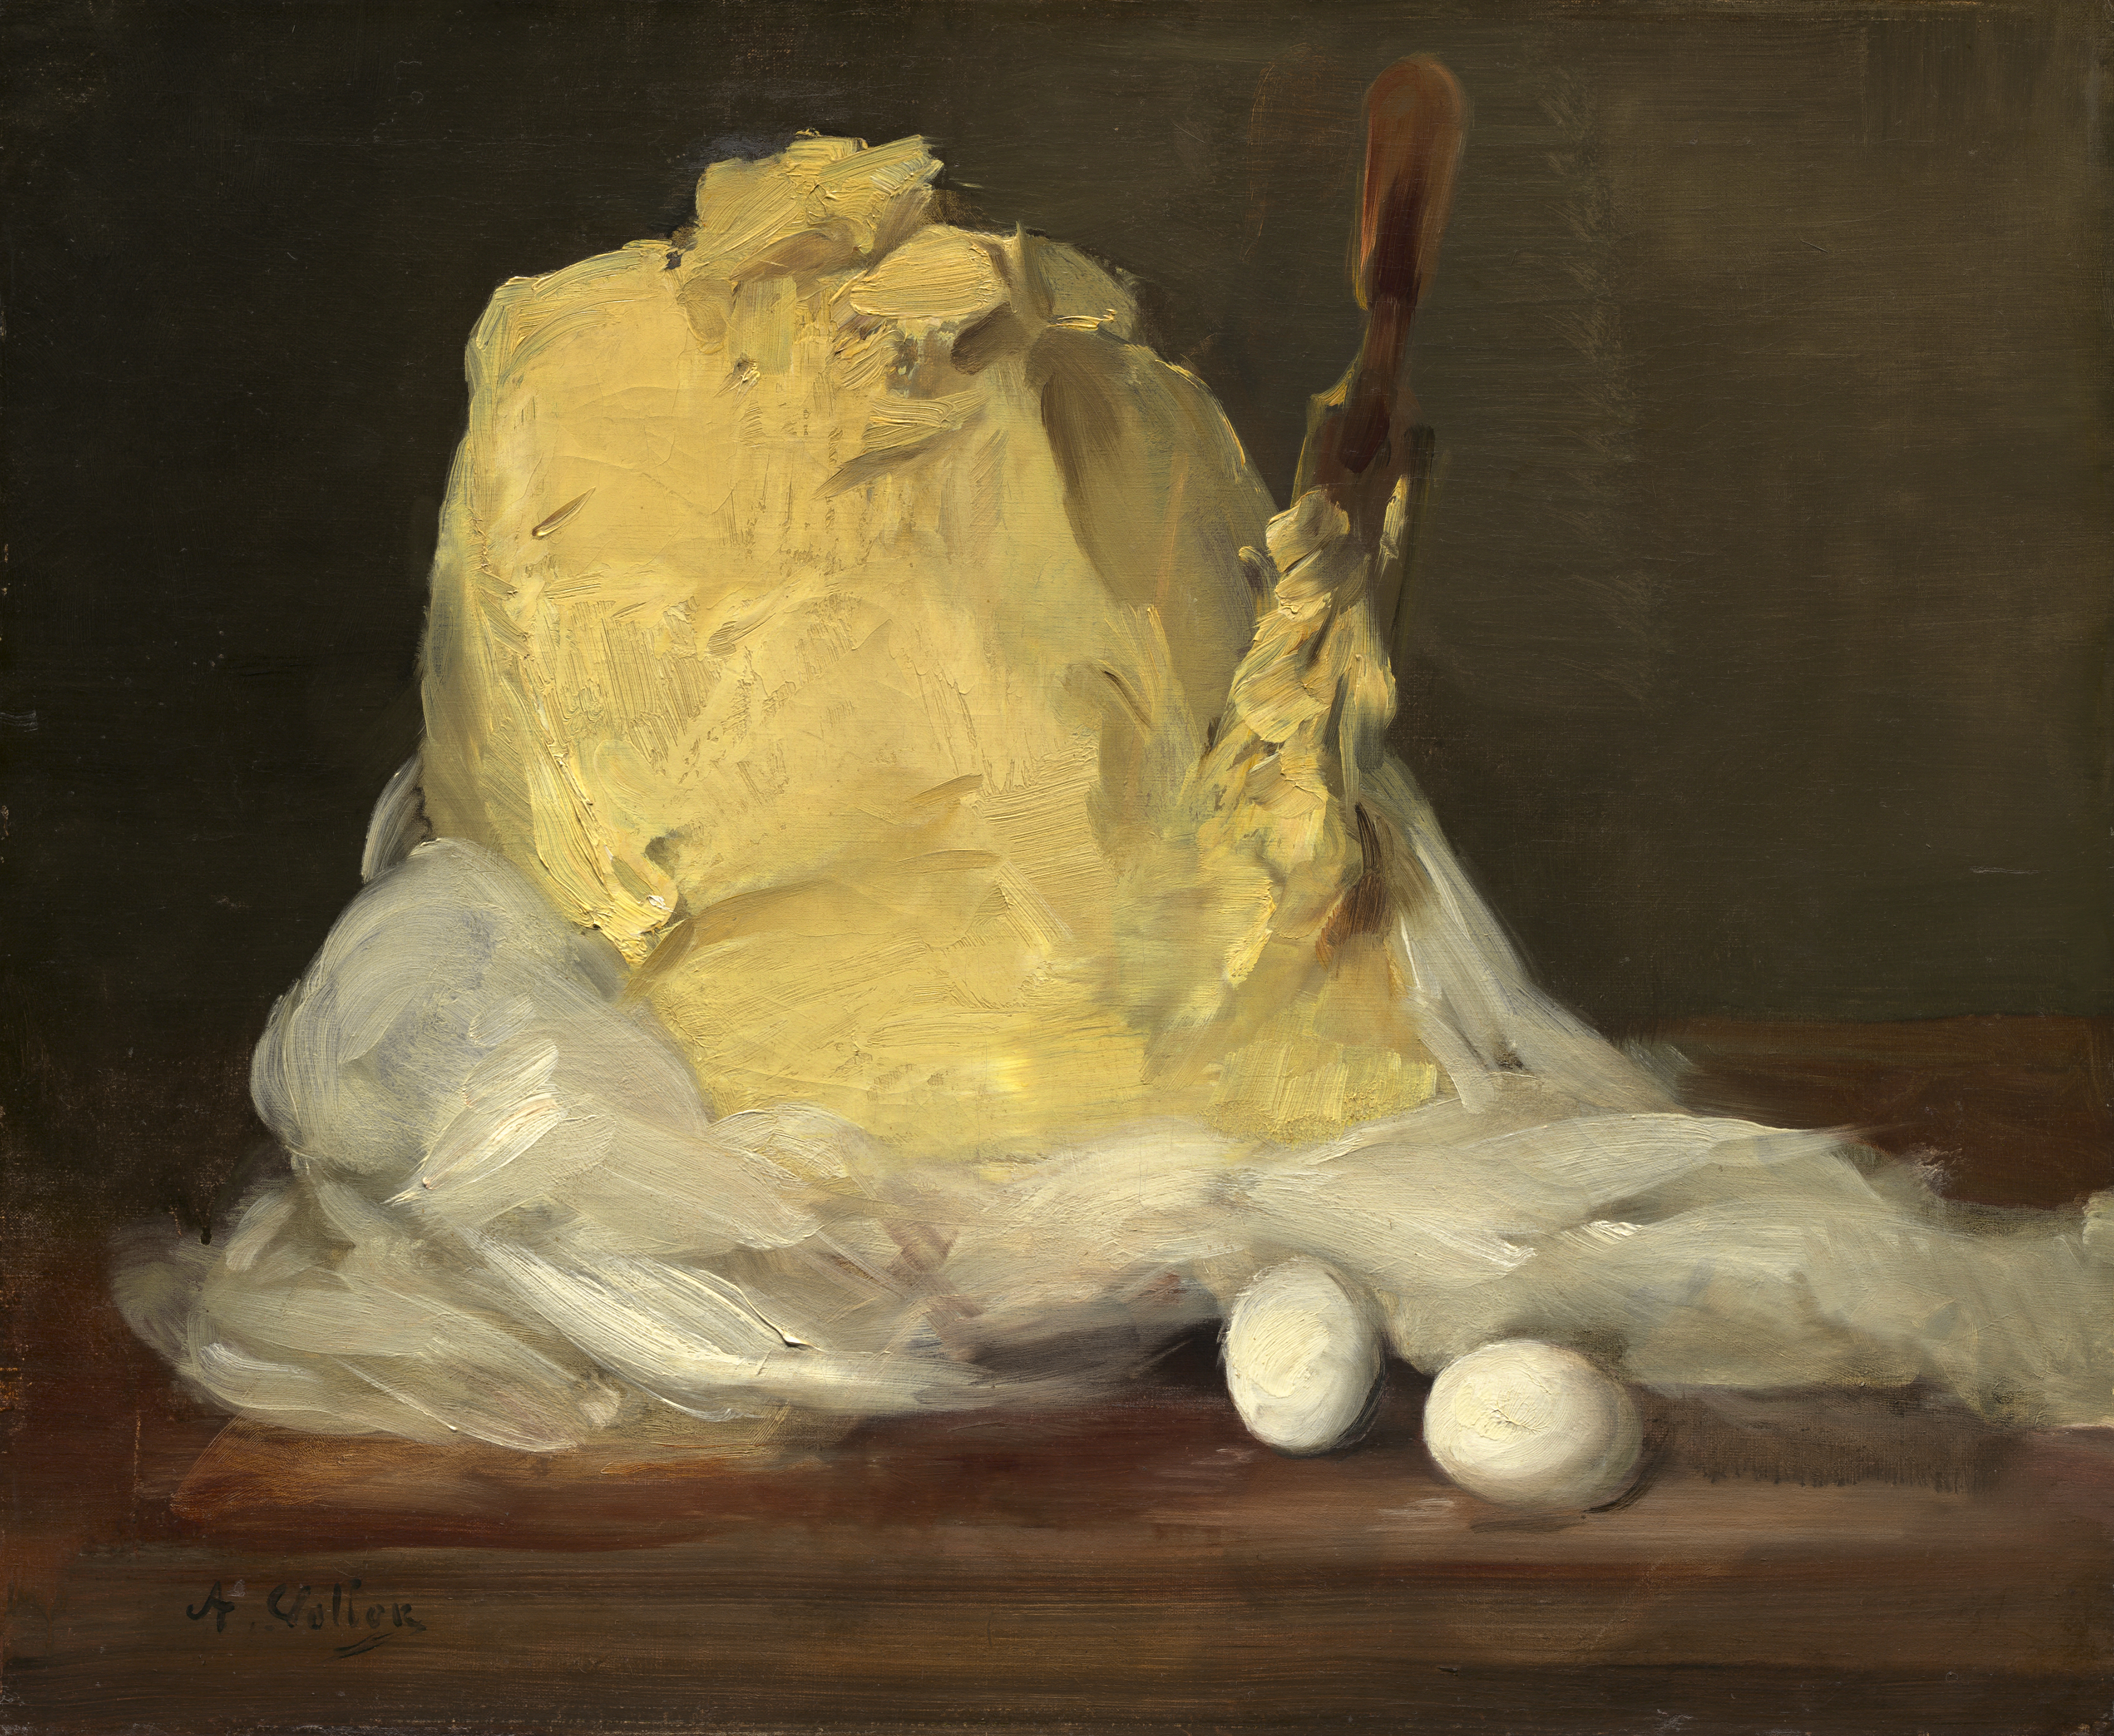 Still life wikipedia mound of butter by antoine vollon 187585 biocorpaavc